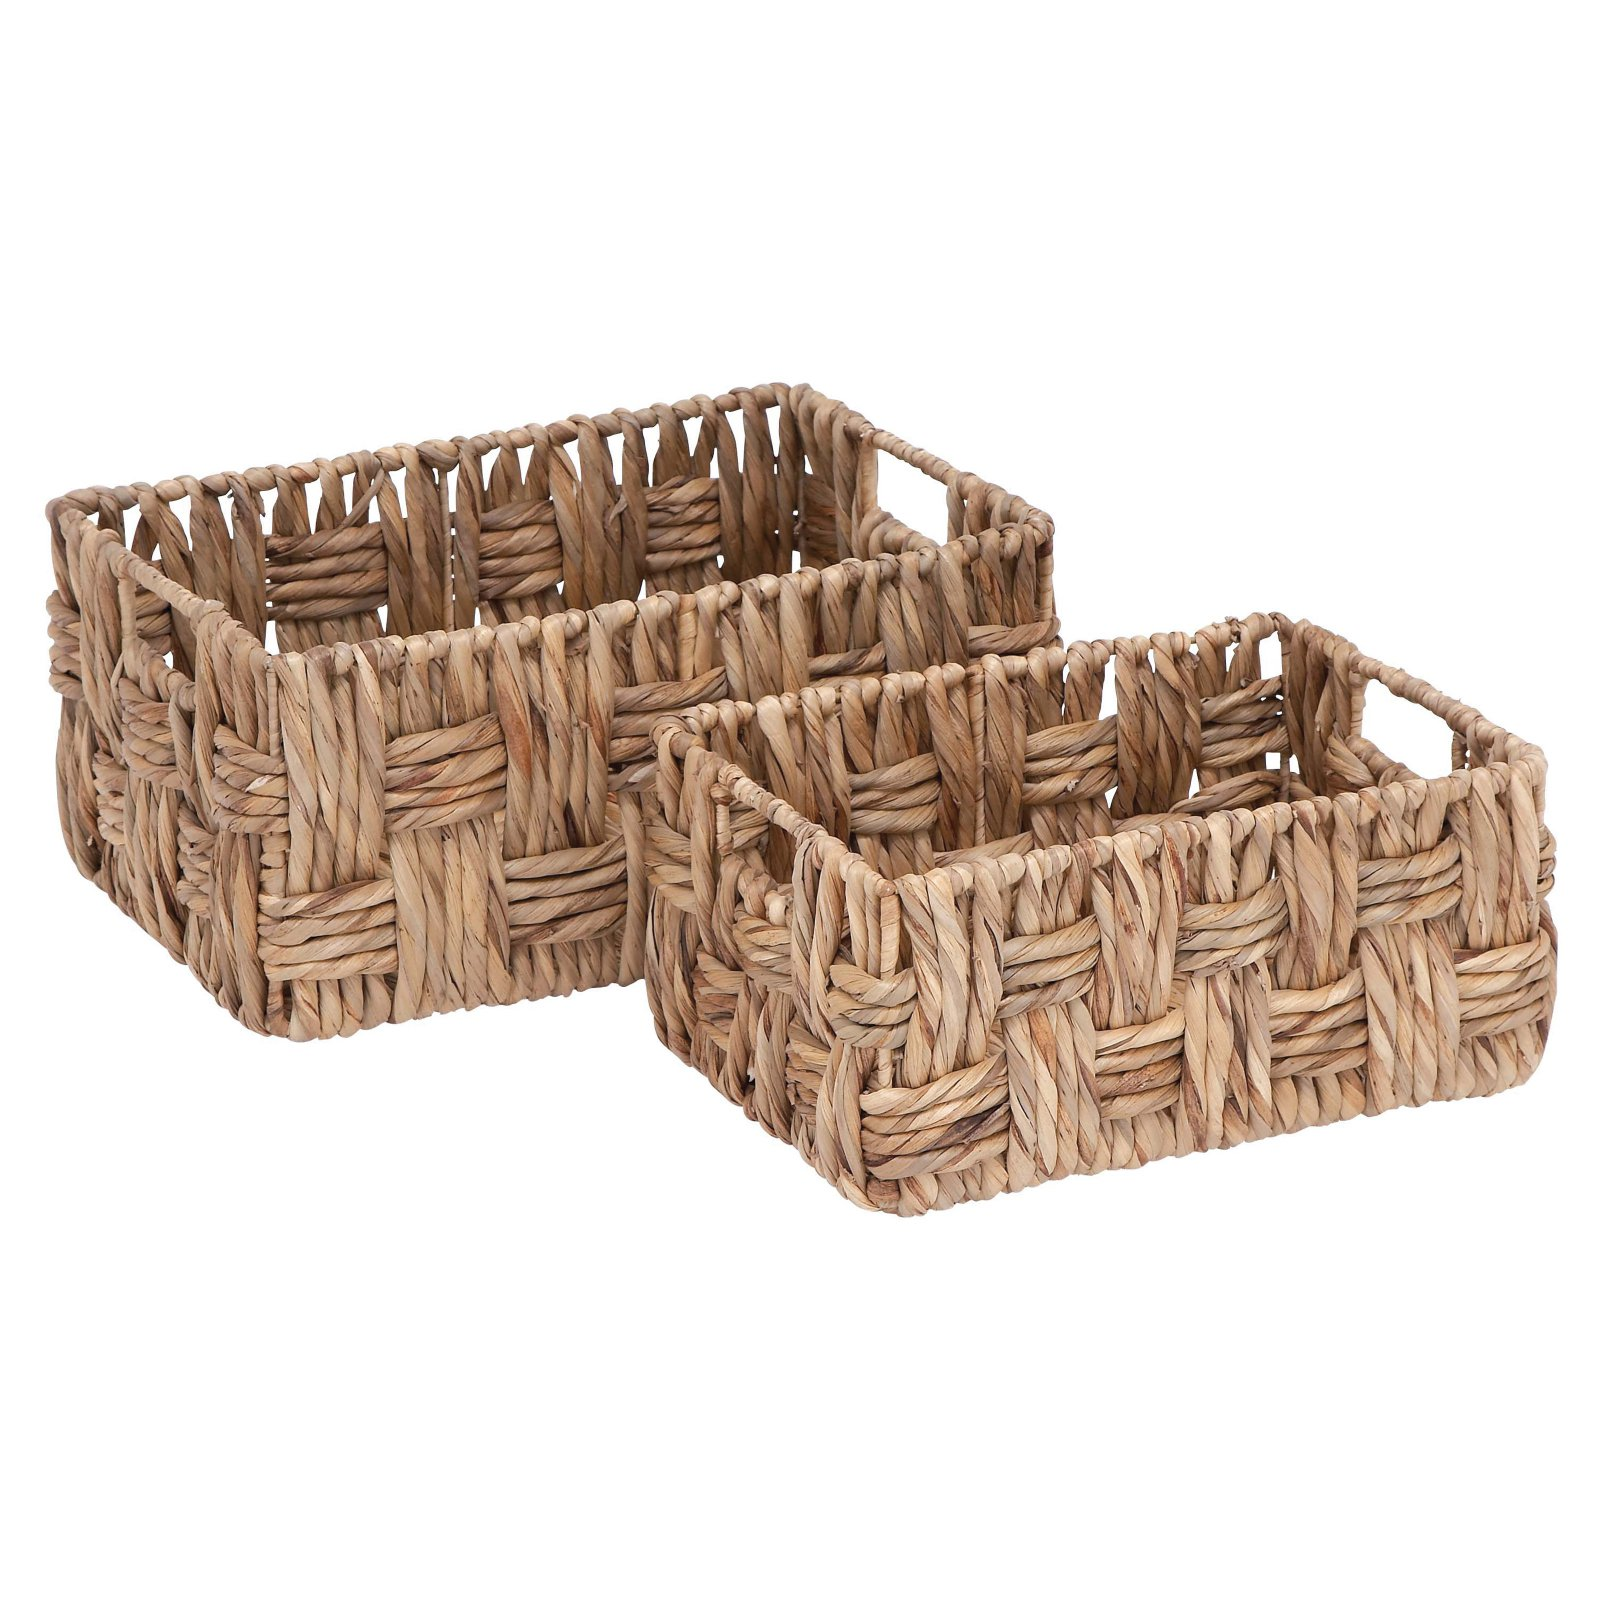 Basket With Wicker Basket Pattern Set Of 2 by Benzara